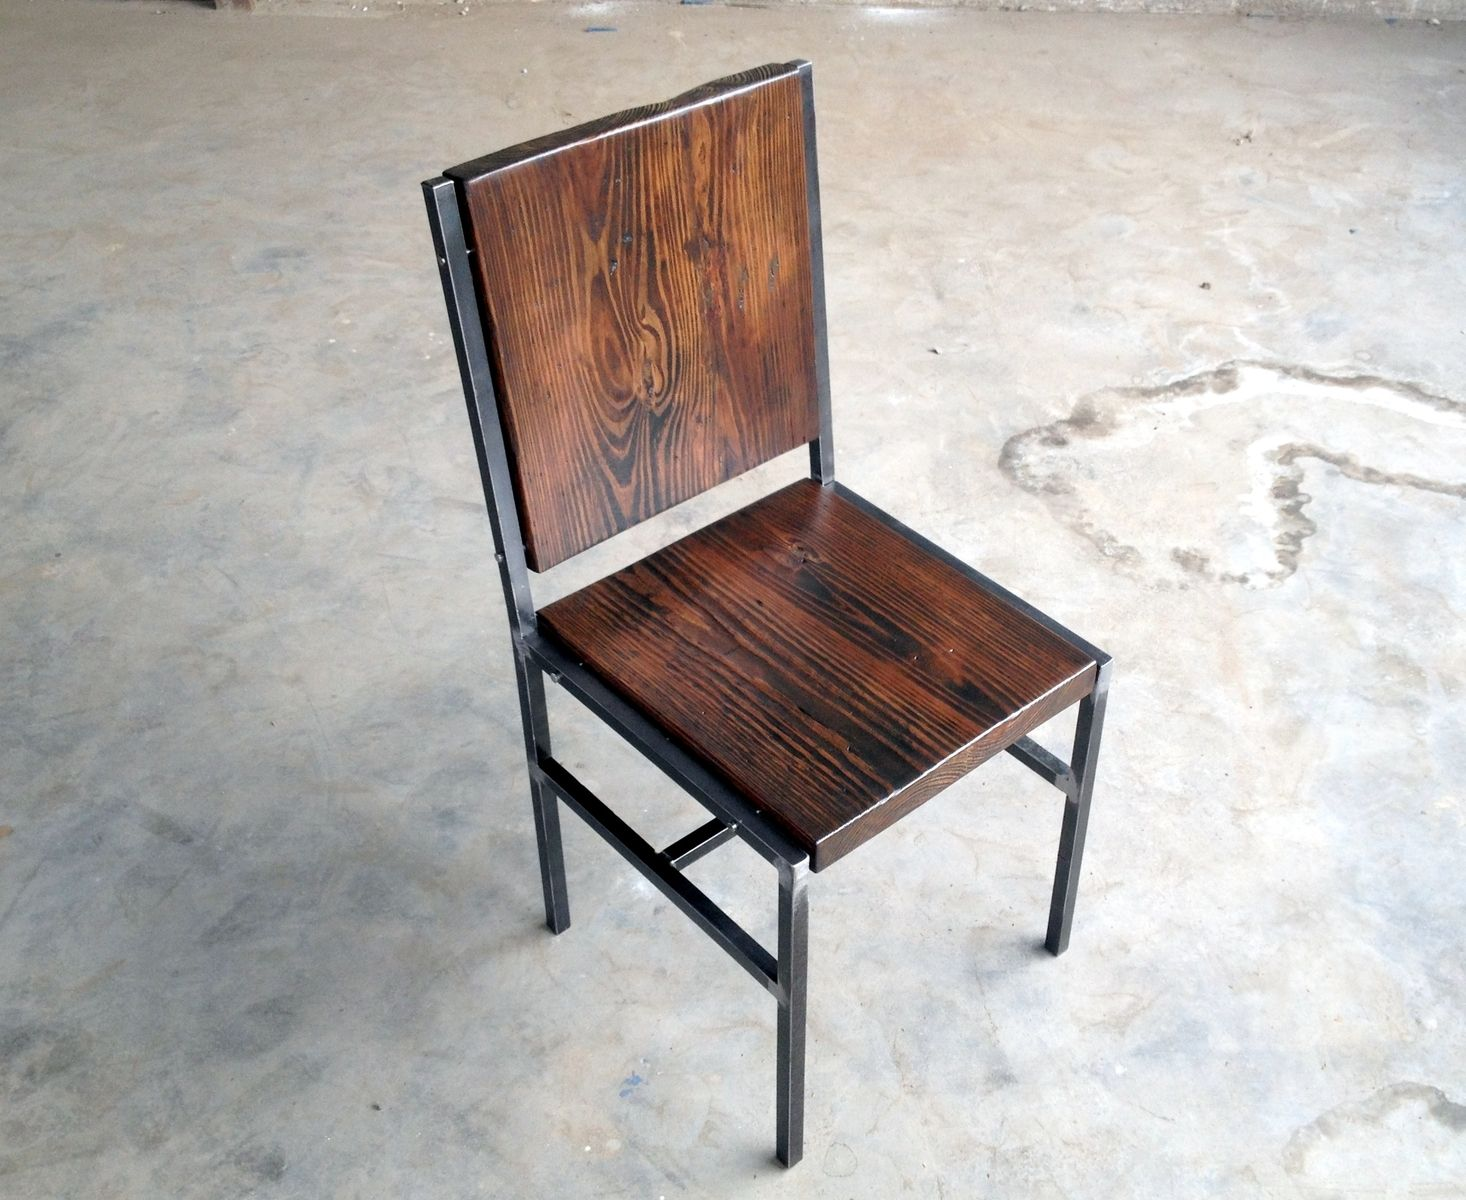 Hand crafted chair stool made of reclaimed wood and steel Wood and steel furniture